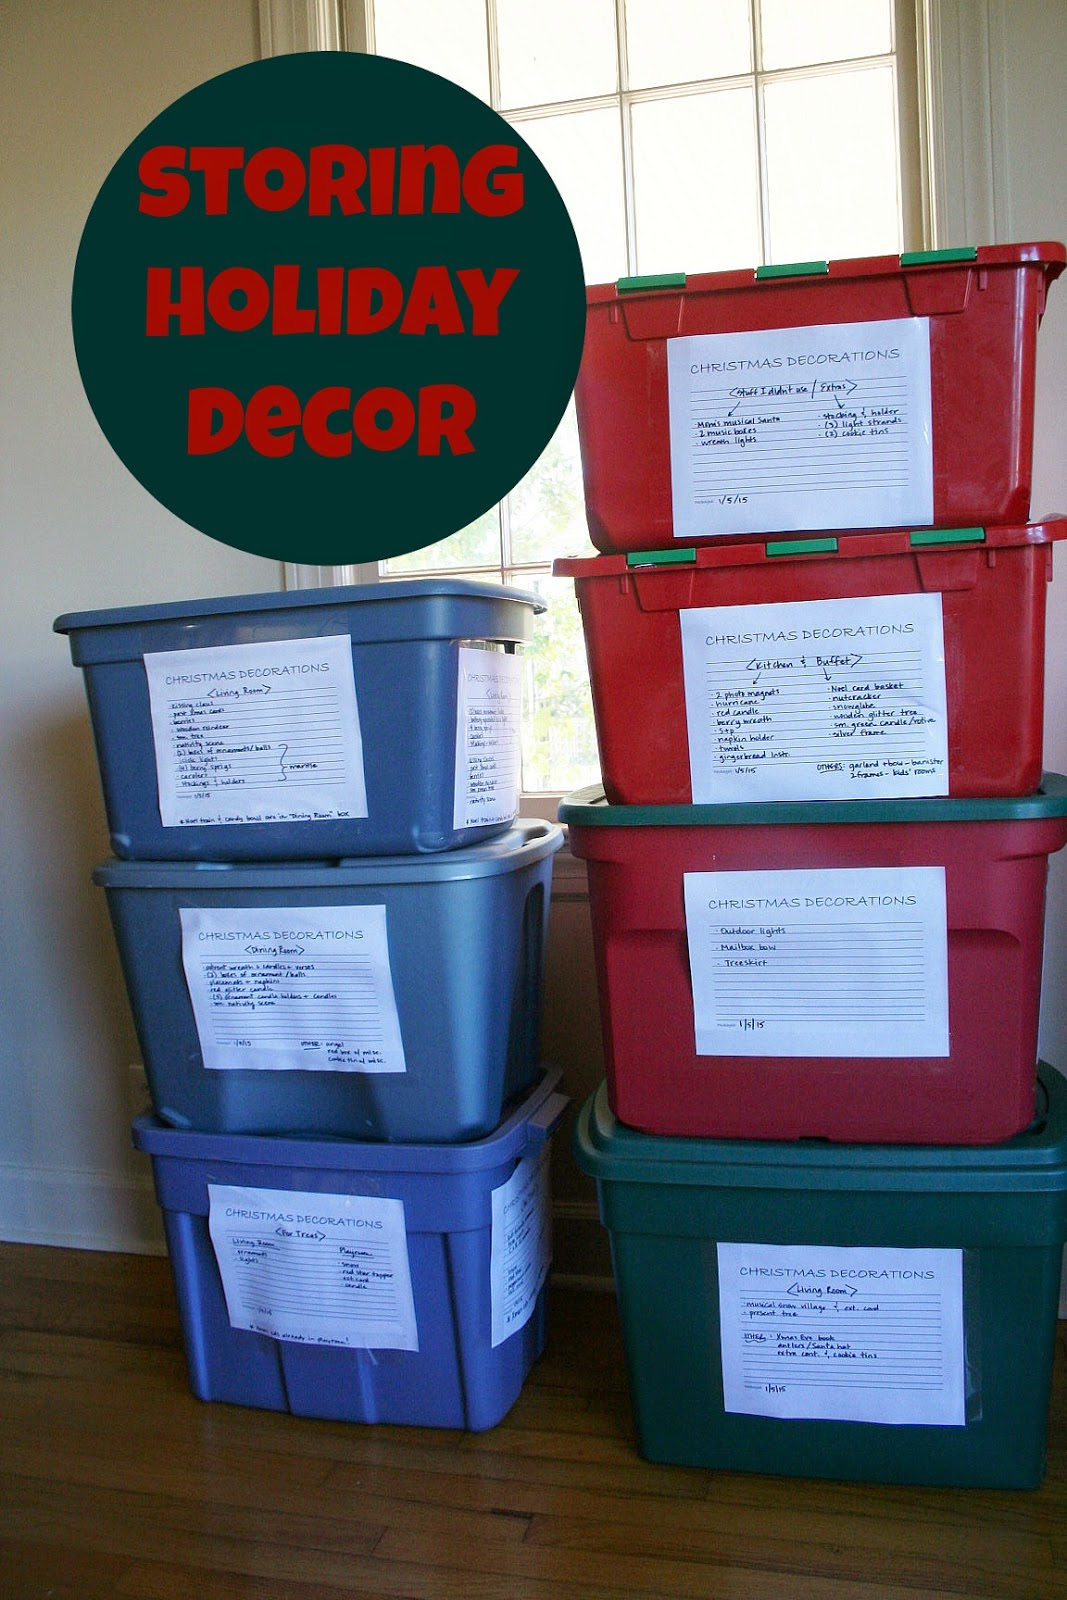 Organizing Plus 123: Storing Holiday Decor